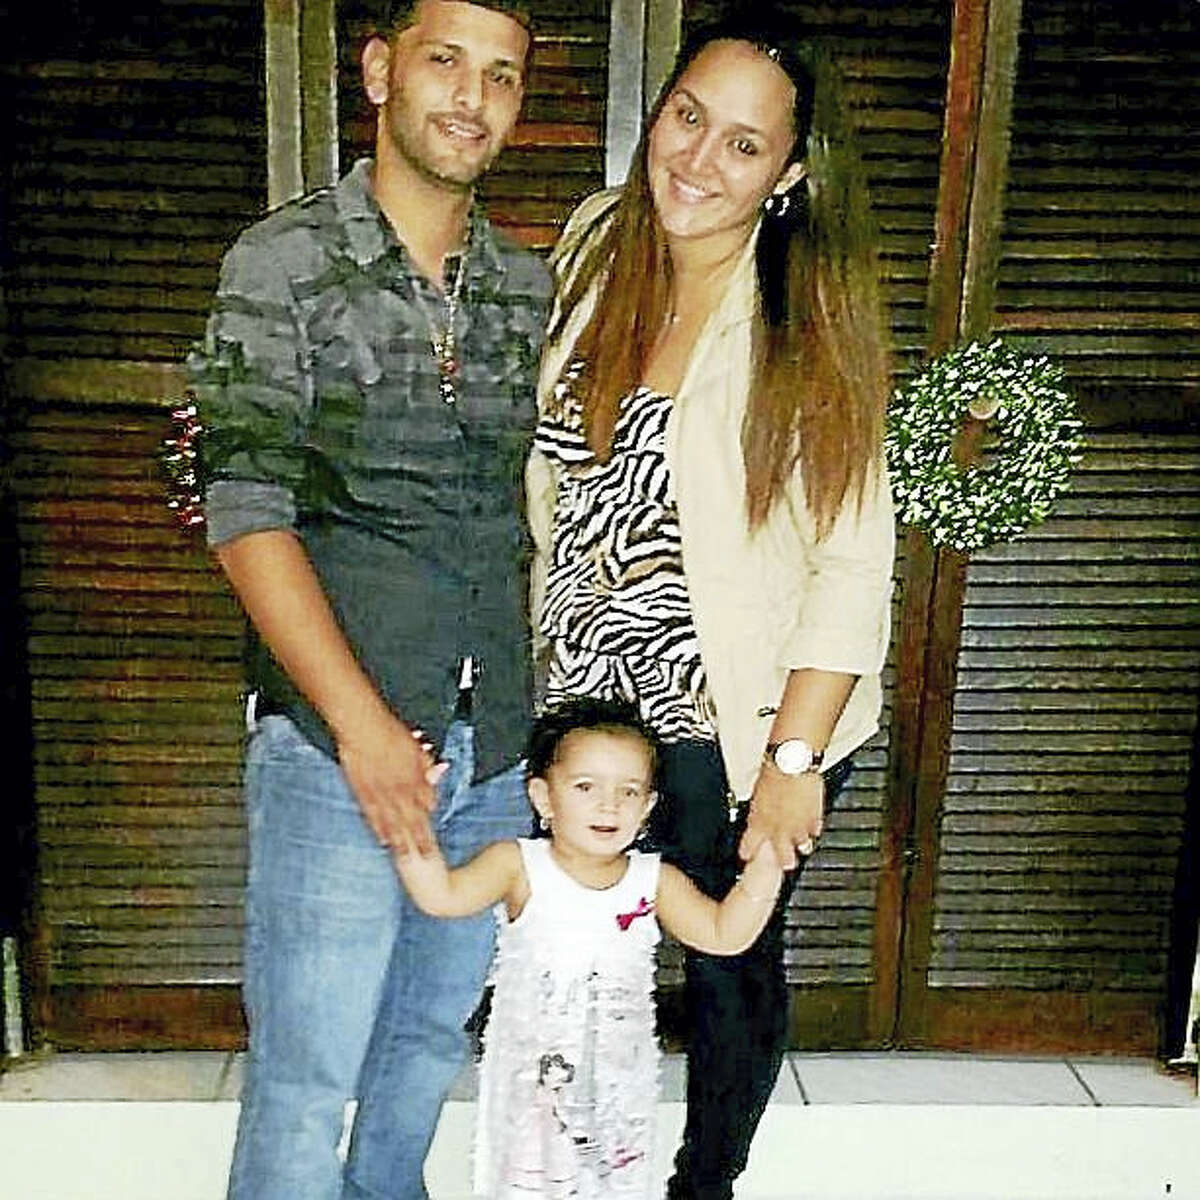 Middletown residents Jay and Katherine Figueroa pose with their 2-year-old daughter, Mariah.